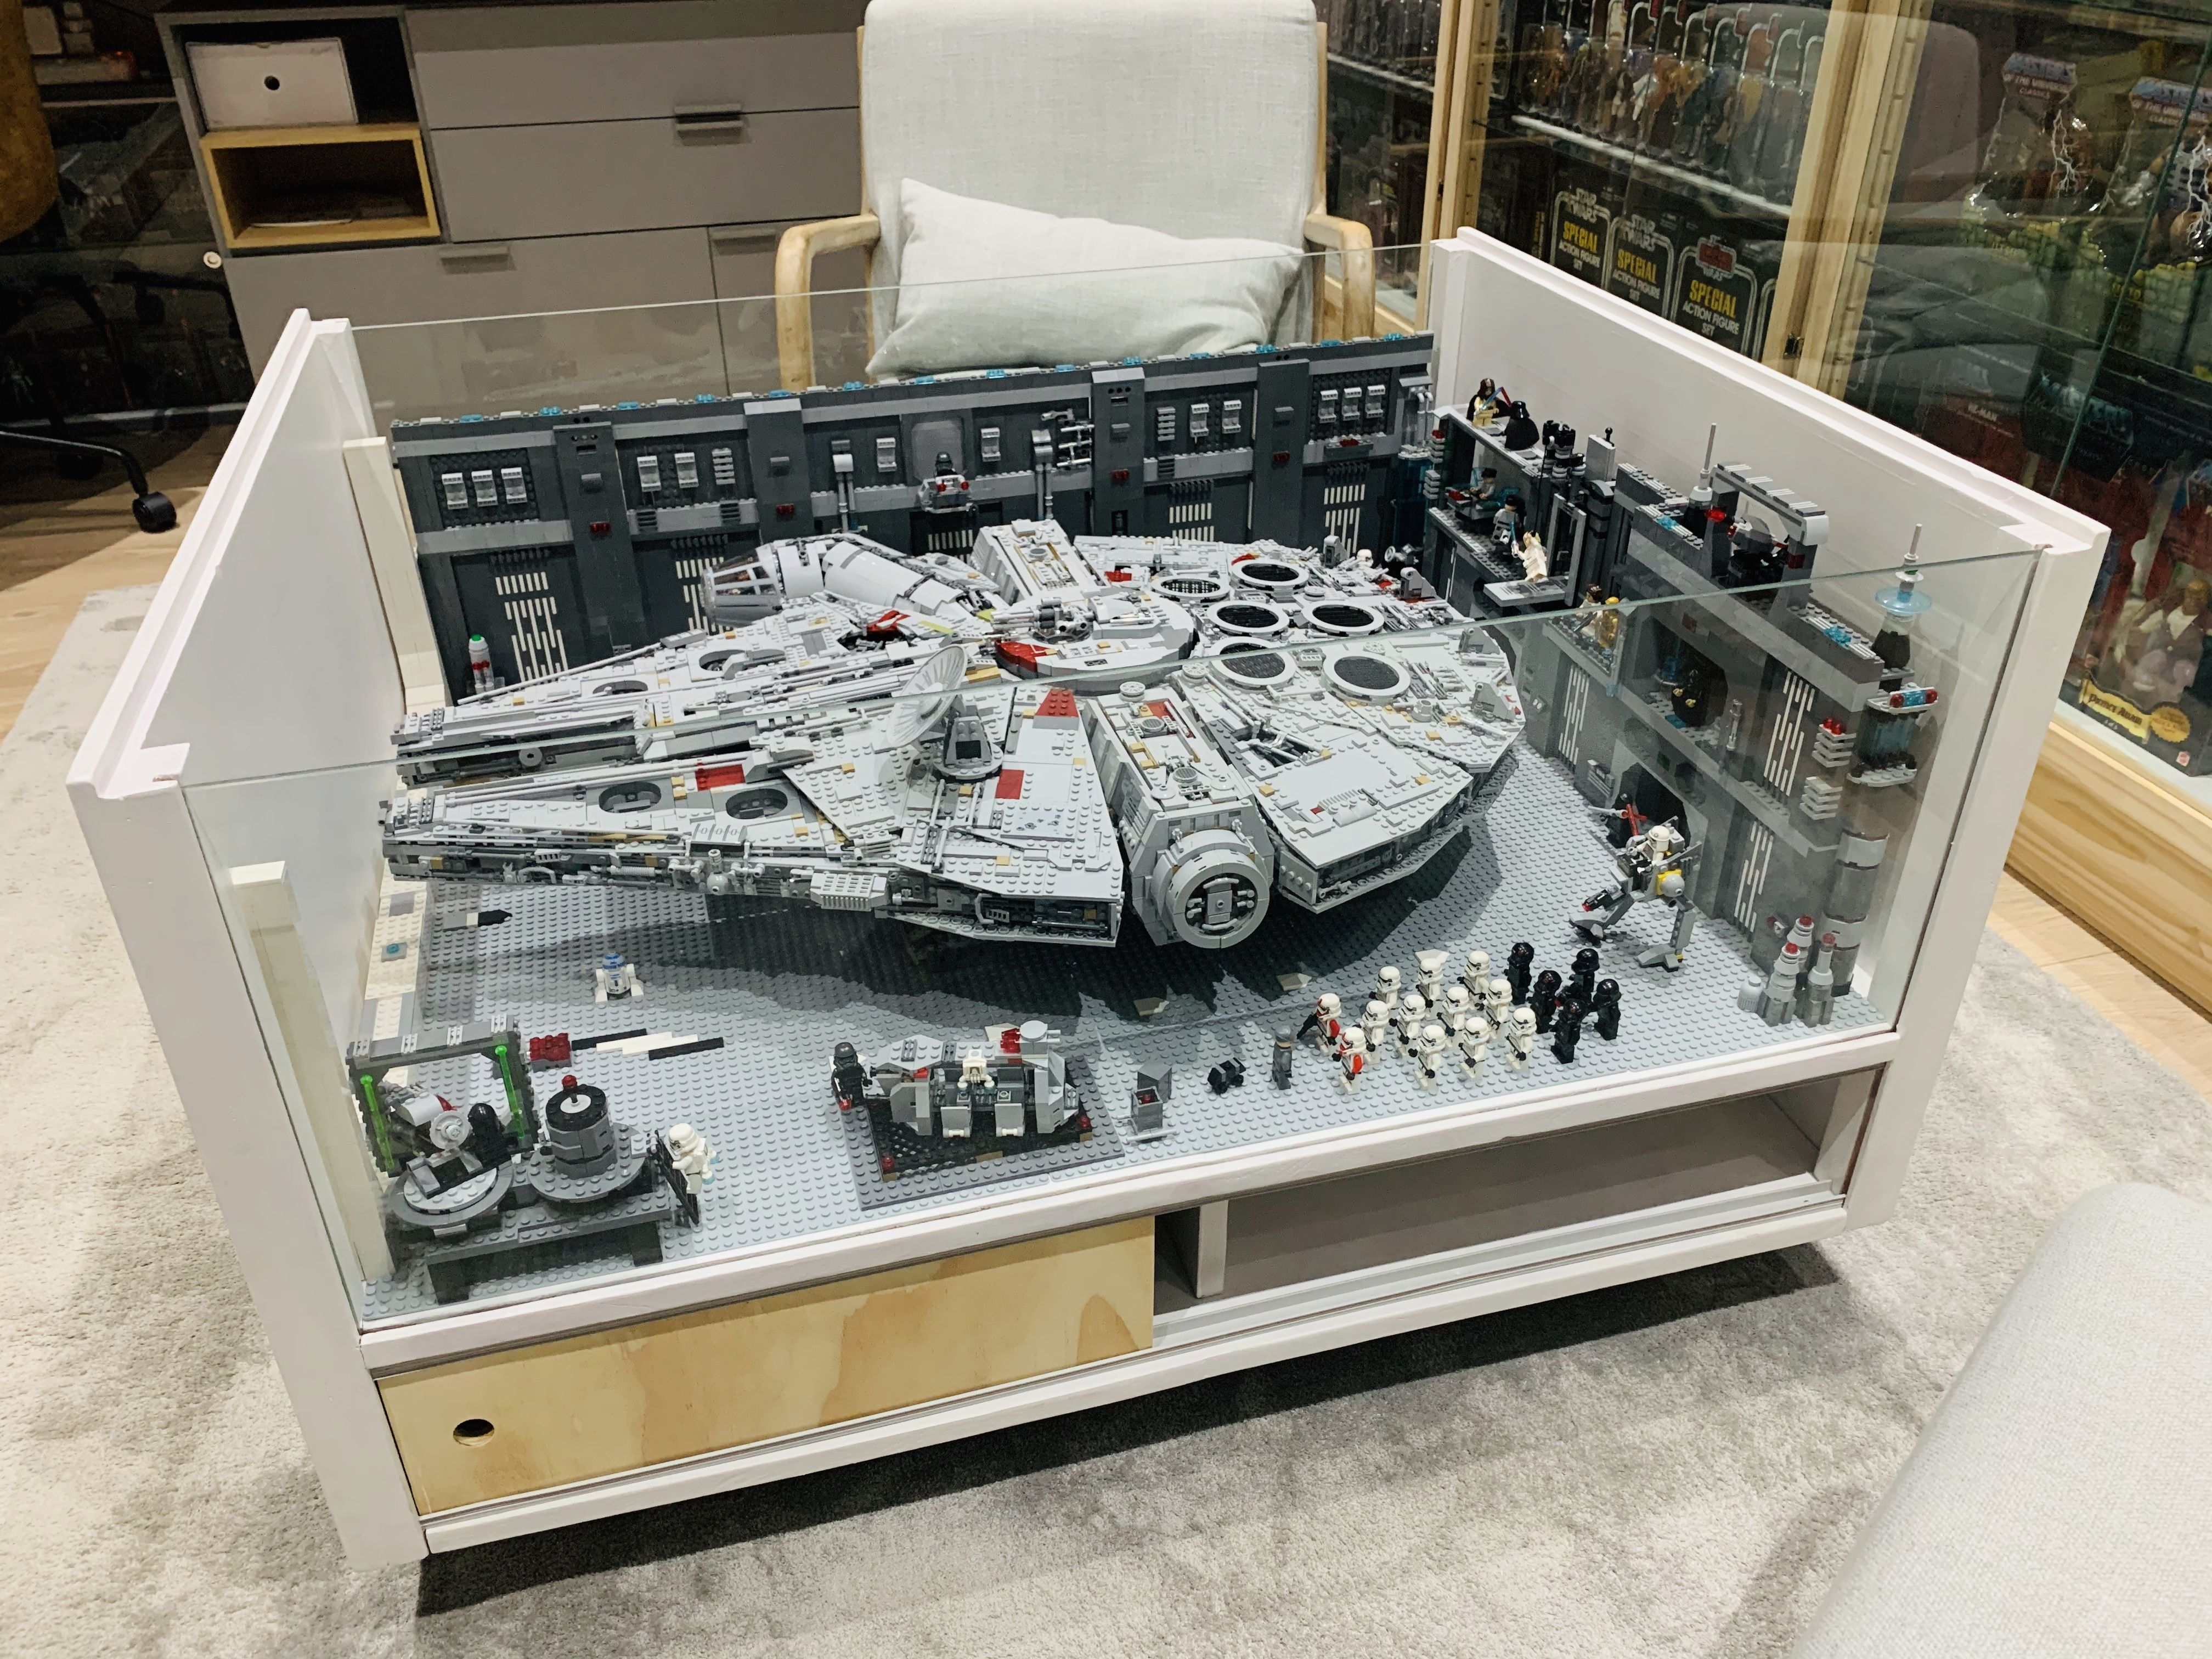 Lego Star Wars Millennium Falcon 75192 Coffee Table Display Star Wars Room Star Wars Painting Star Wars Collection Display [ 3024 x 4032 Pixel ]